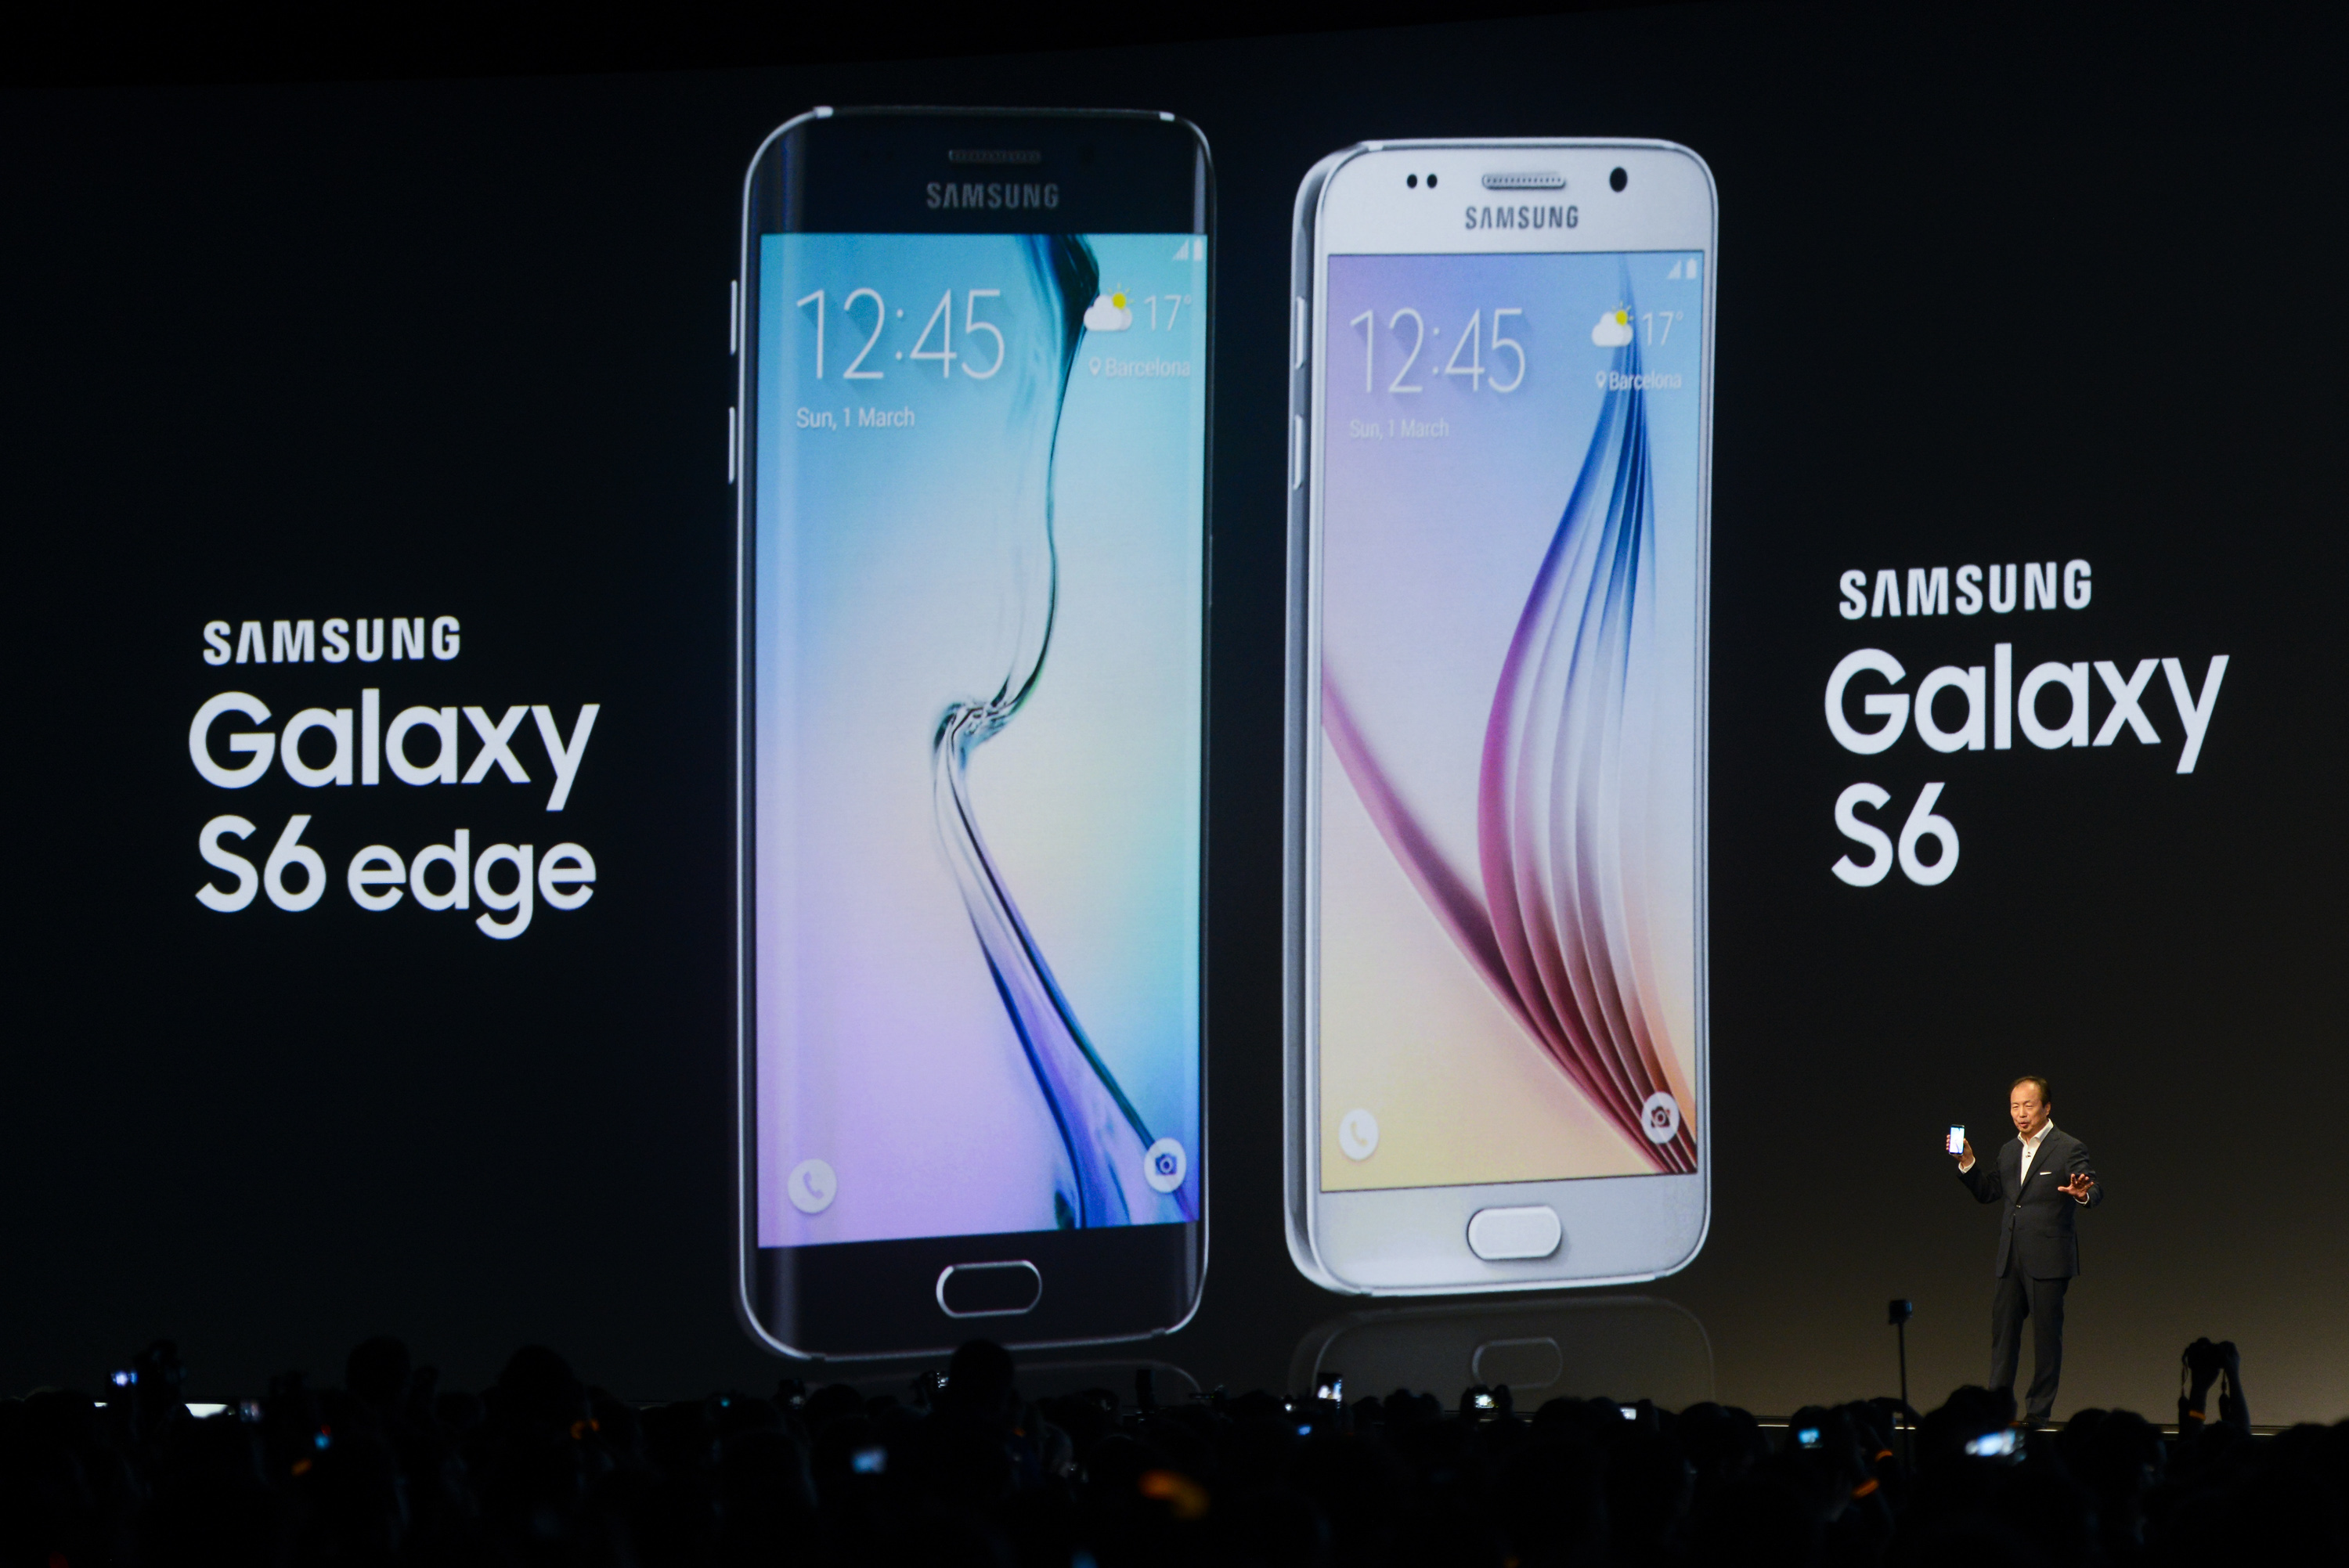 CEO and President of Samsung JK Shin presents the new Samsung Galaxy S6 during the  Mobile World Congress on March 1, 2015 in Barcelona, Spain.